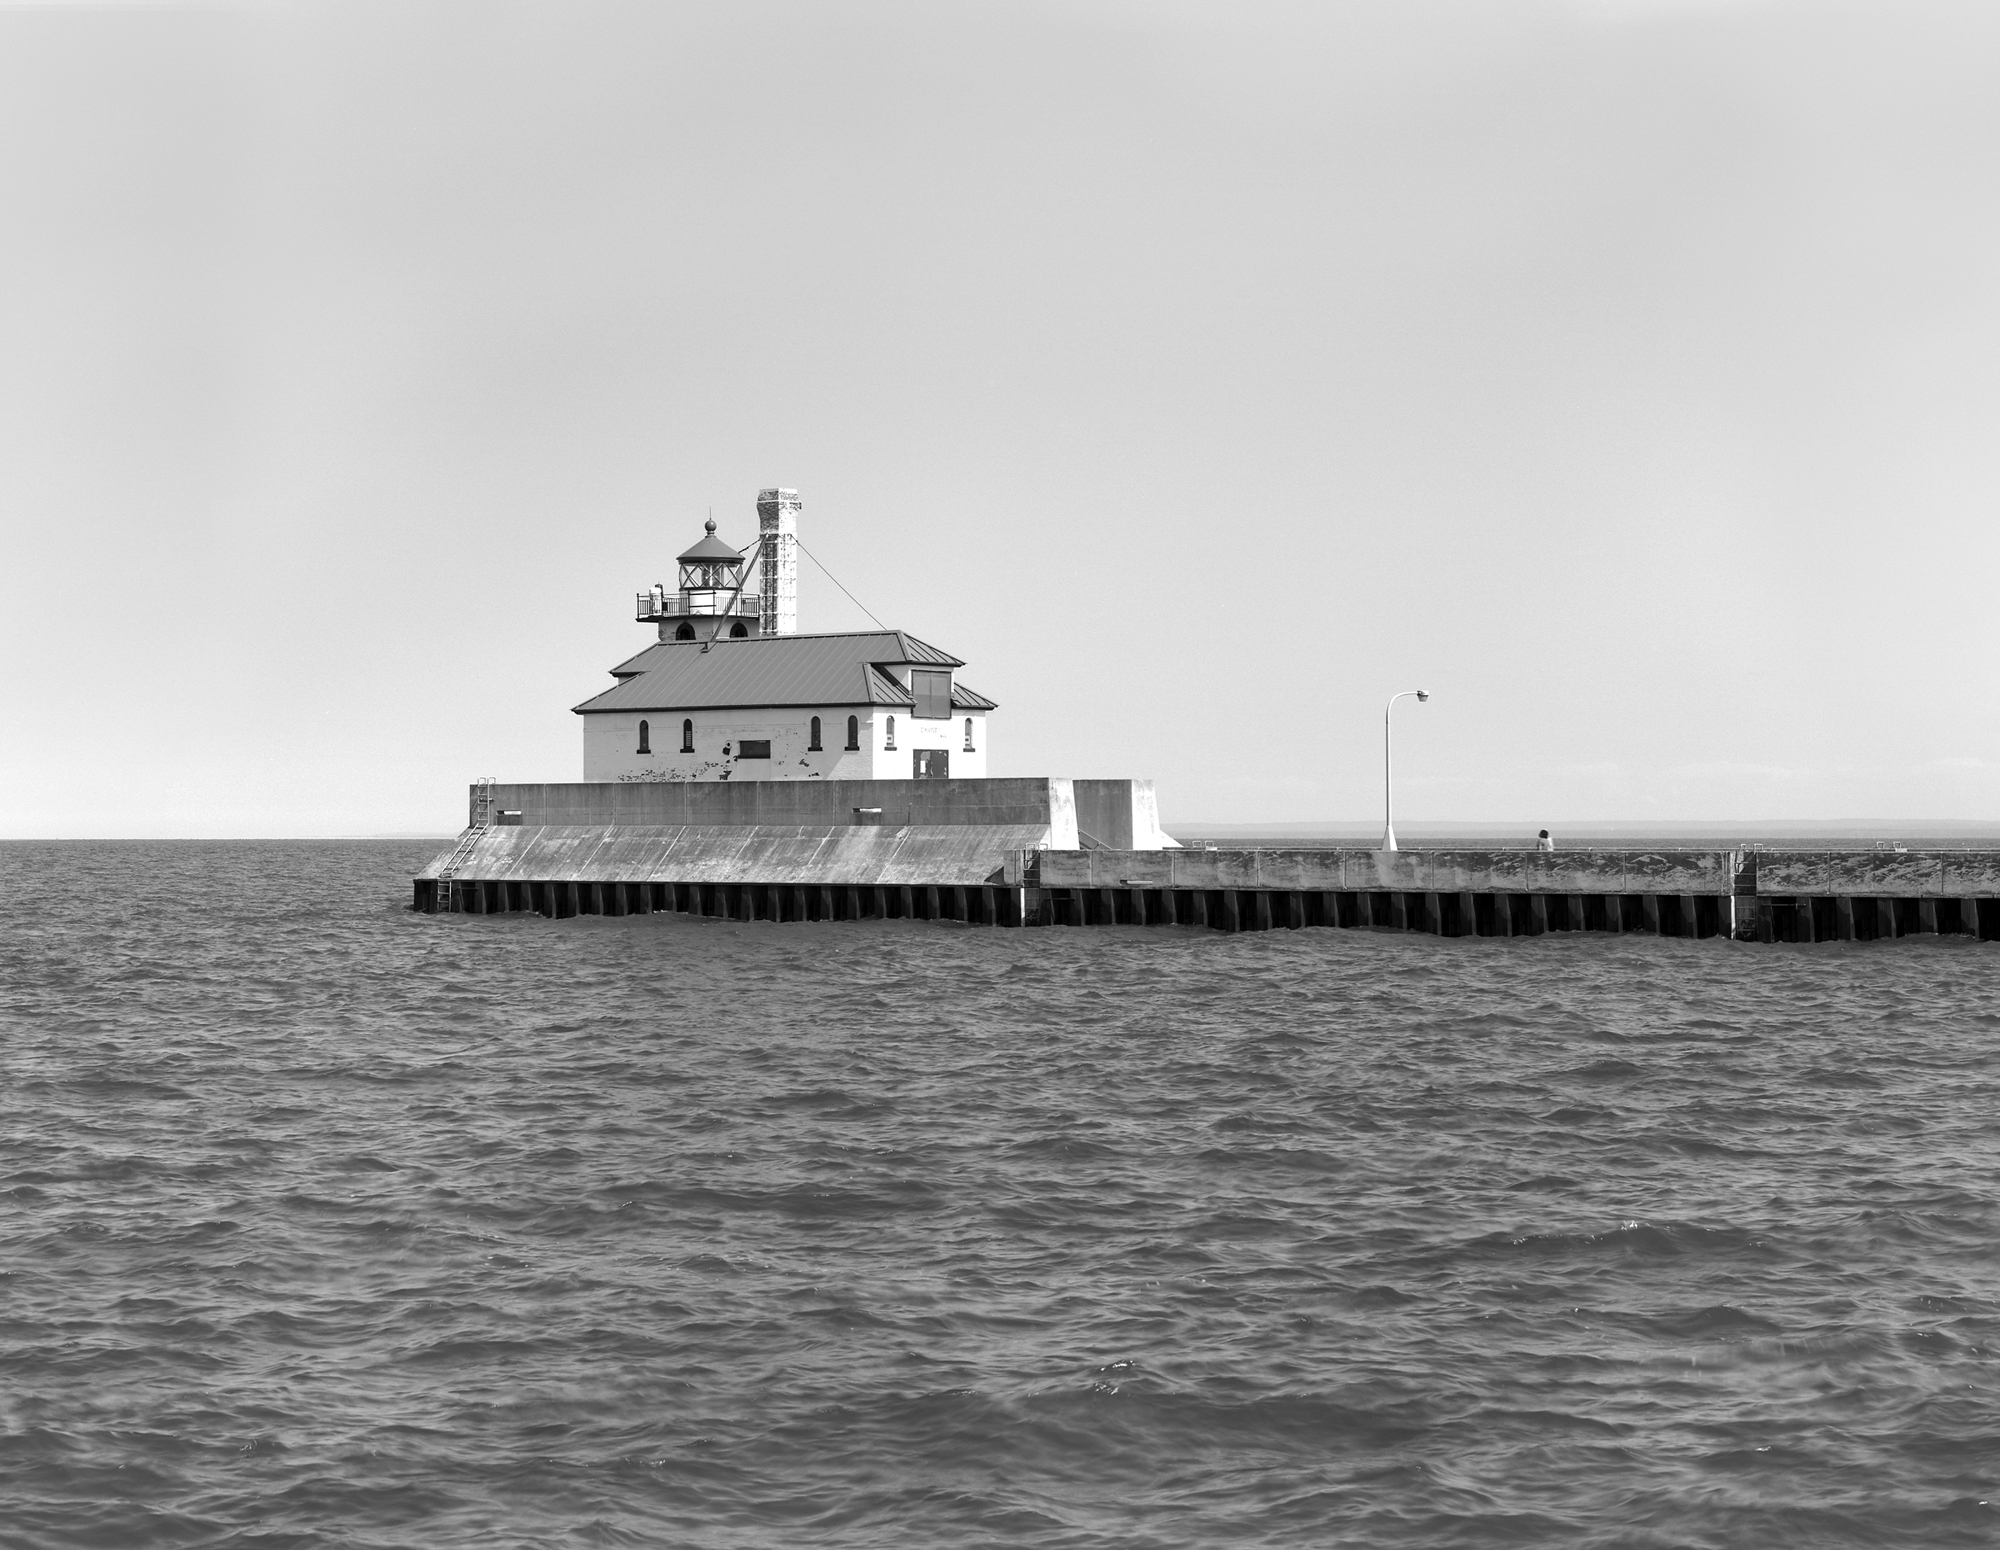 South Breakwater Light - SL-DUL-2003-02 (Please credit Daniel R. Pratt and the Minnesota Historic Property Record)